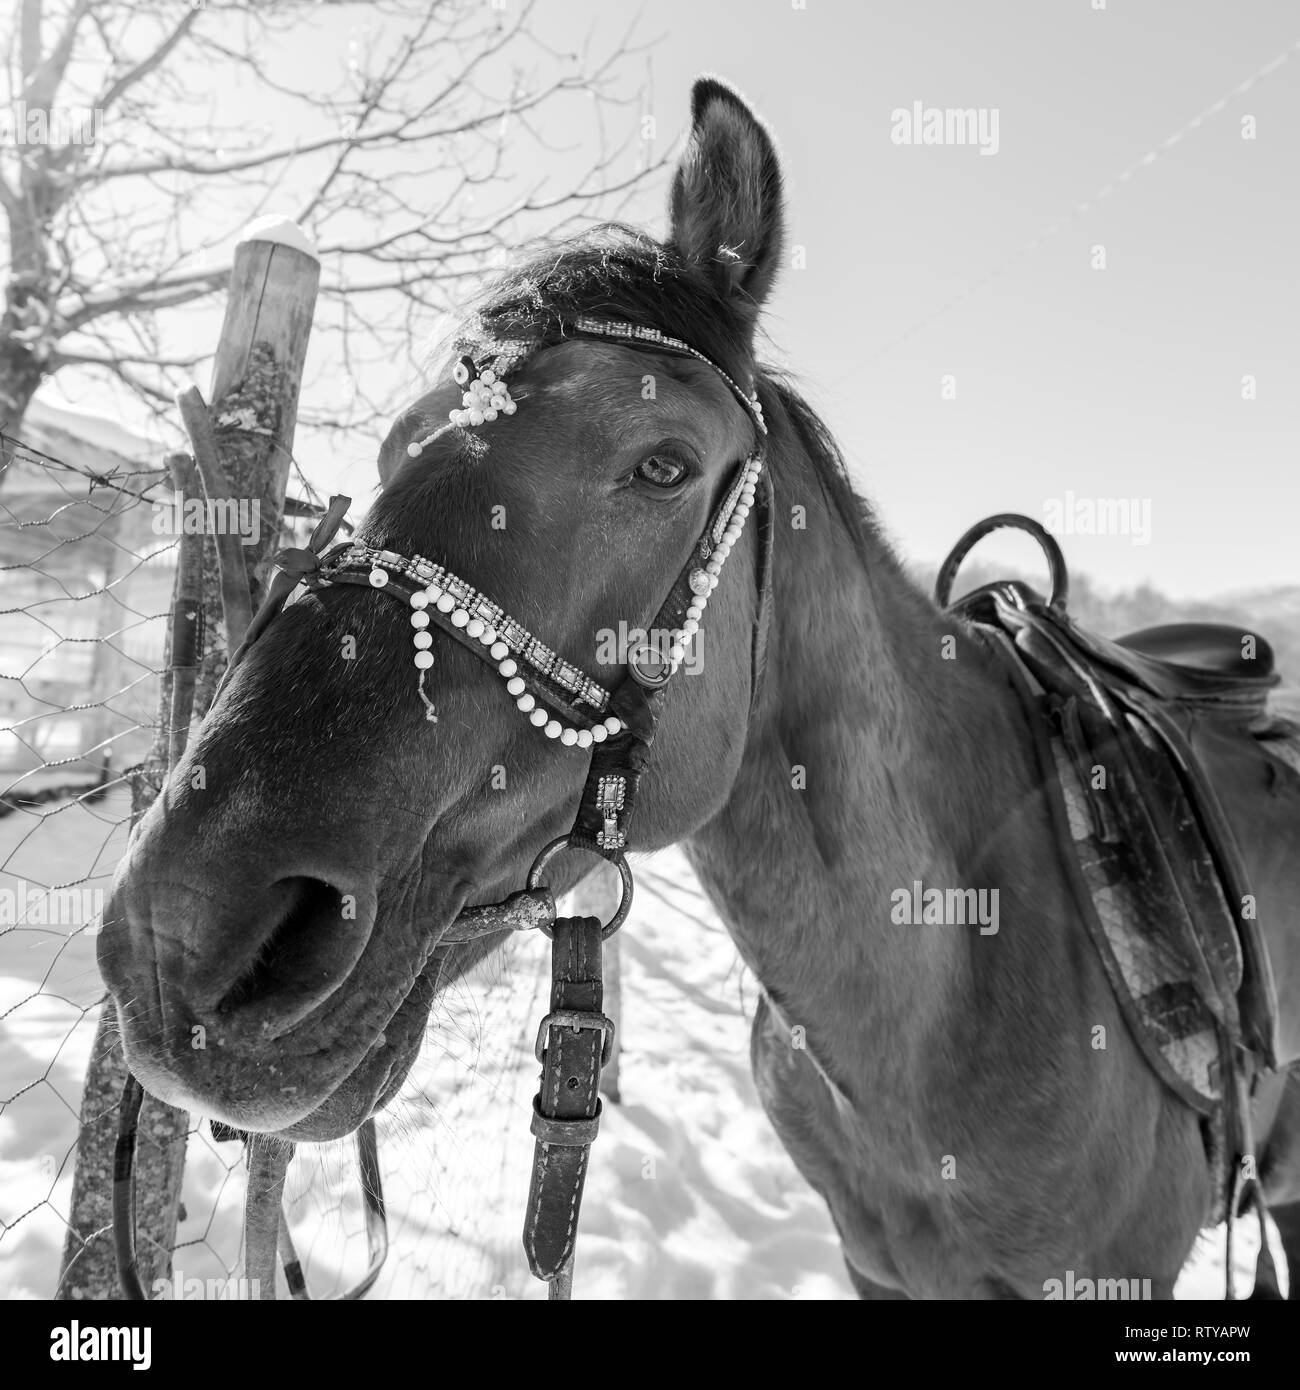 Stallion on a leash by the fence on a winter day - Stock Image